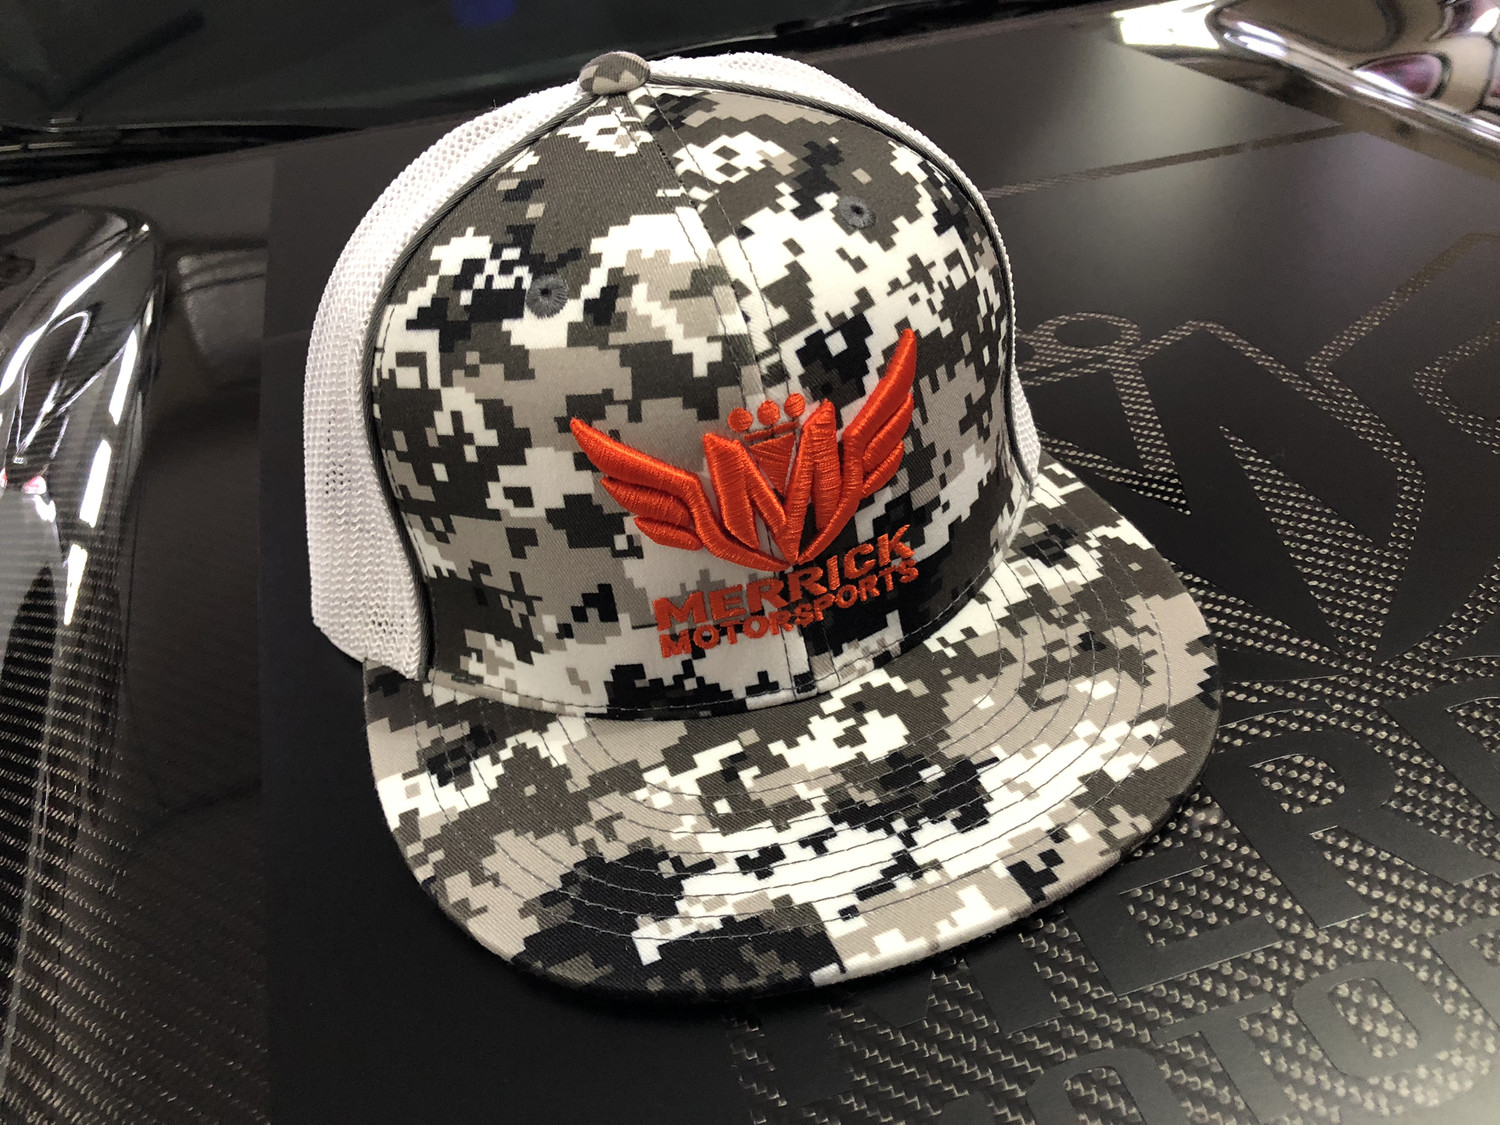 f690036bc6513 Fitted 8D8 Digital Camo Trucker Mesh Flatbill Hat with Merrick Motorsports  3D Logo